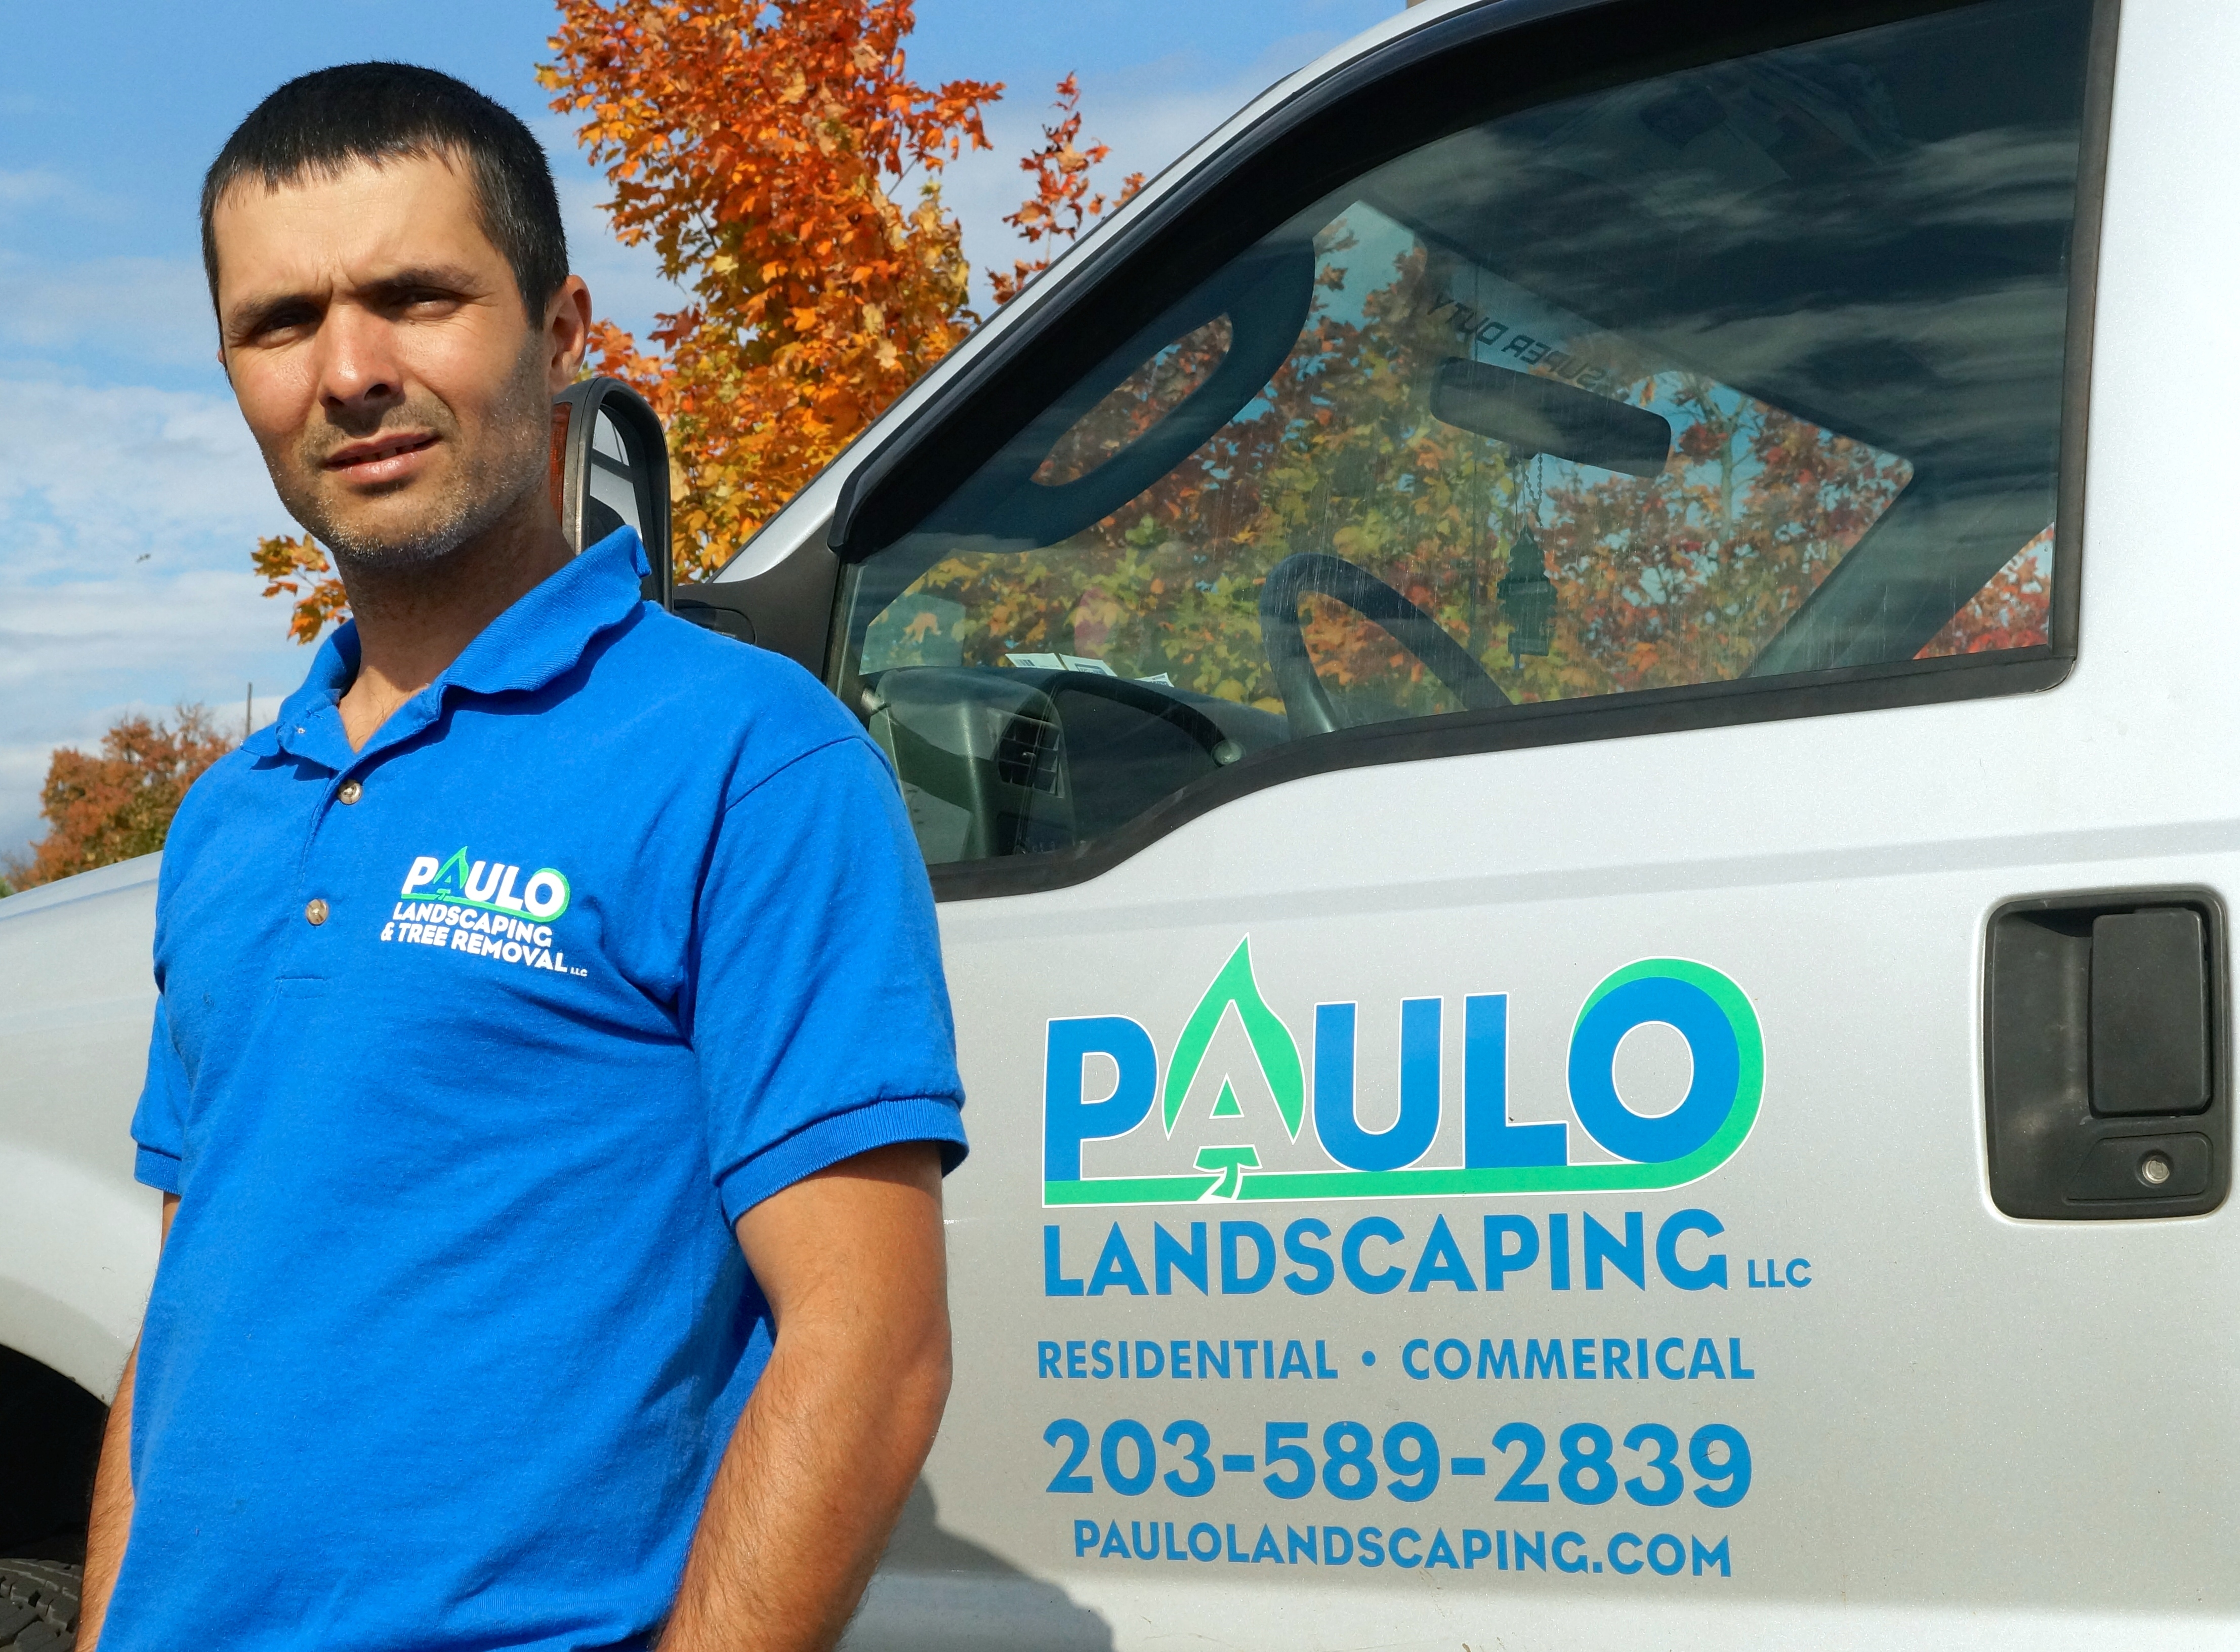 Paulo's Landscaping & Tree Removal LLC image 1